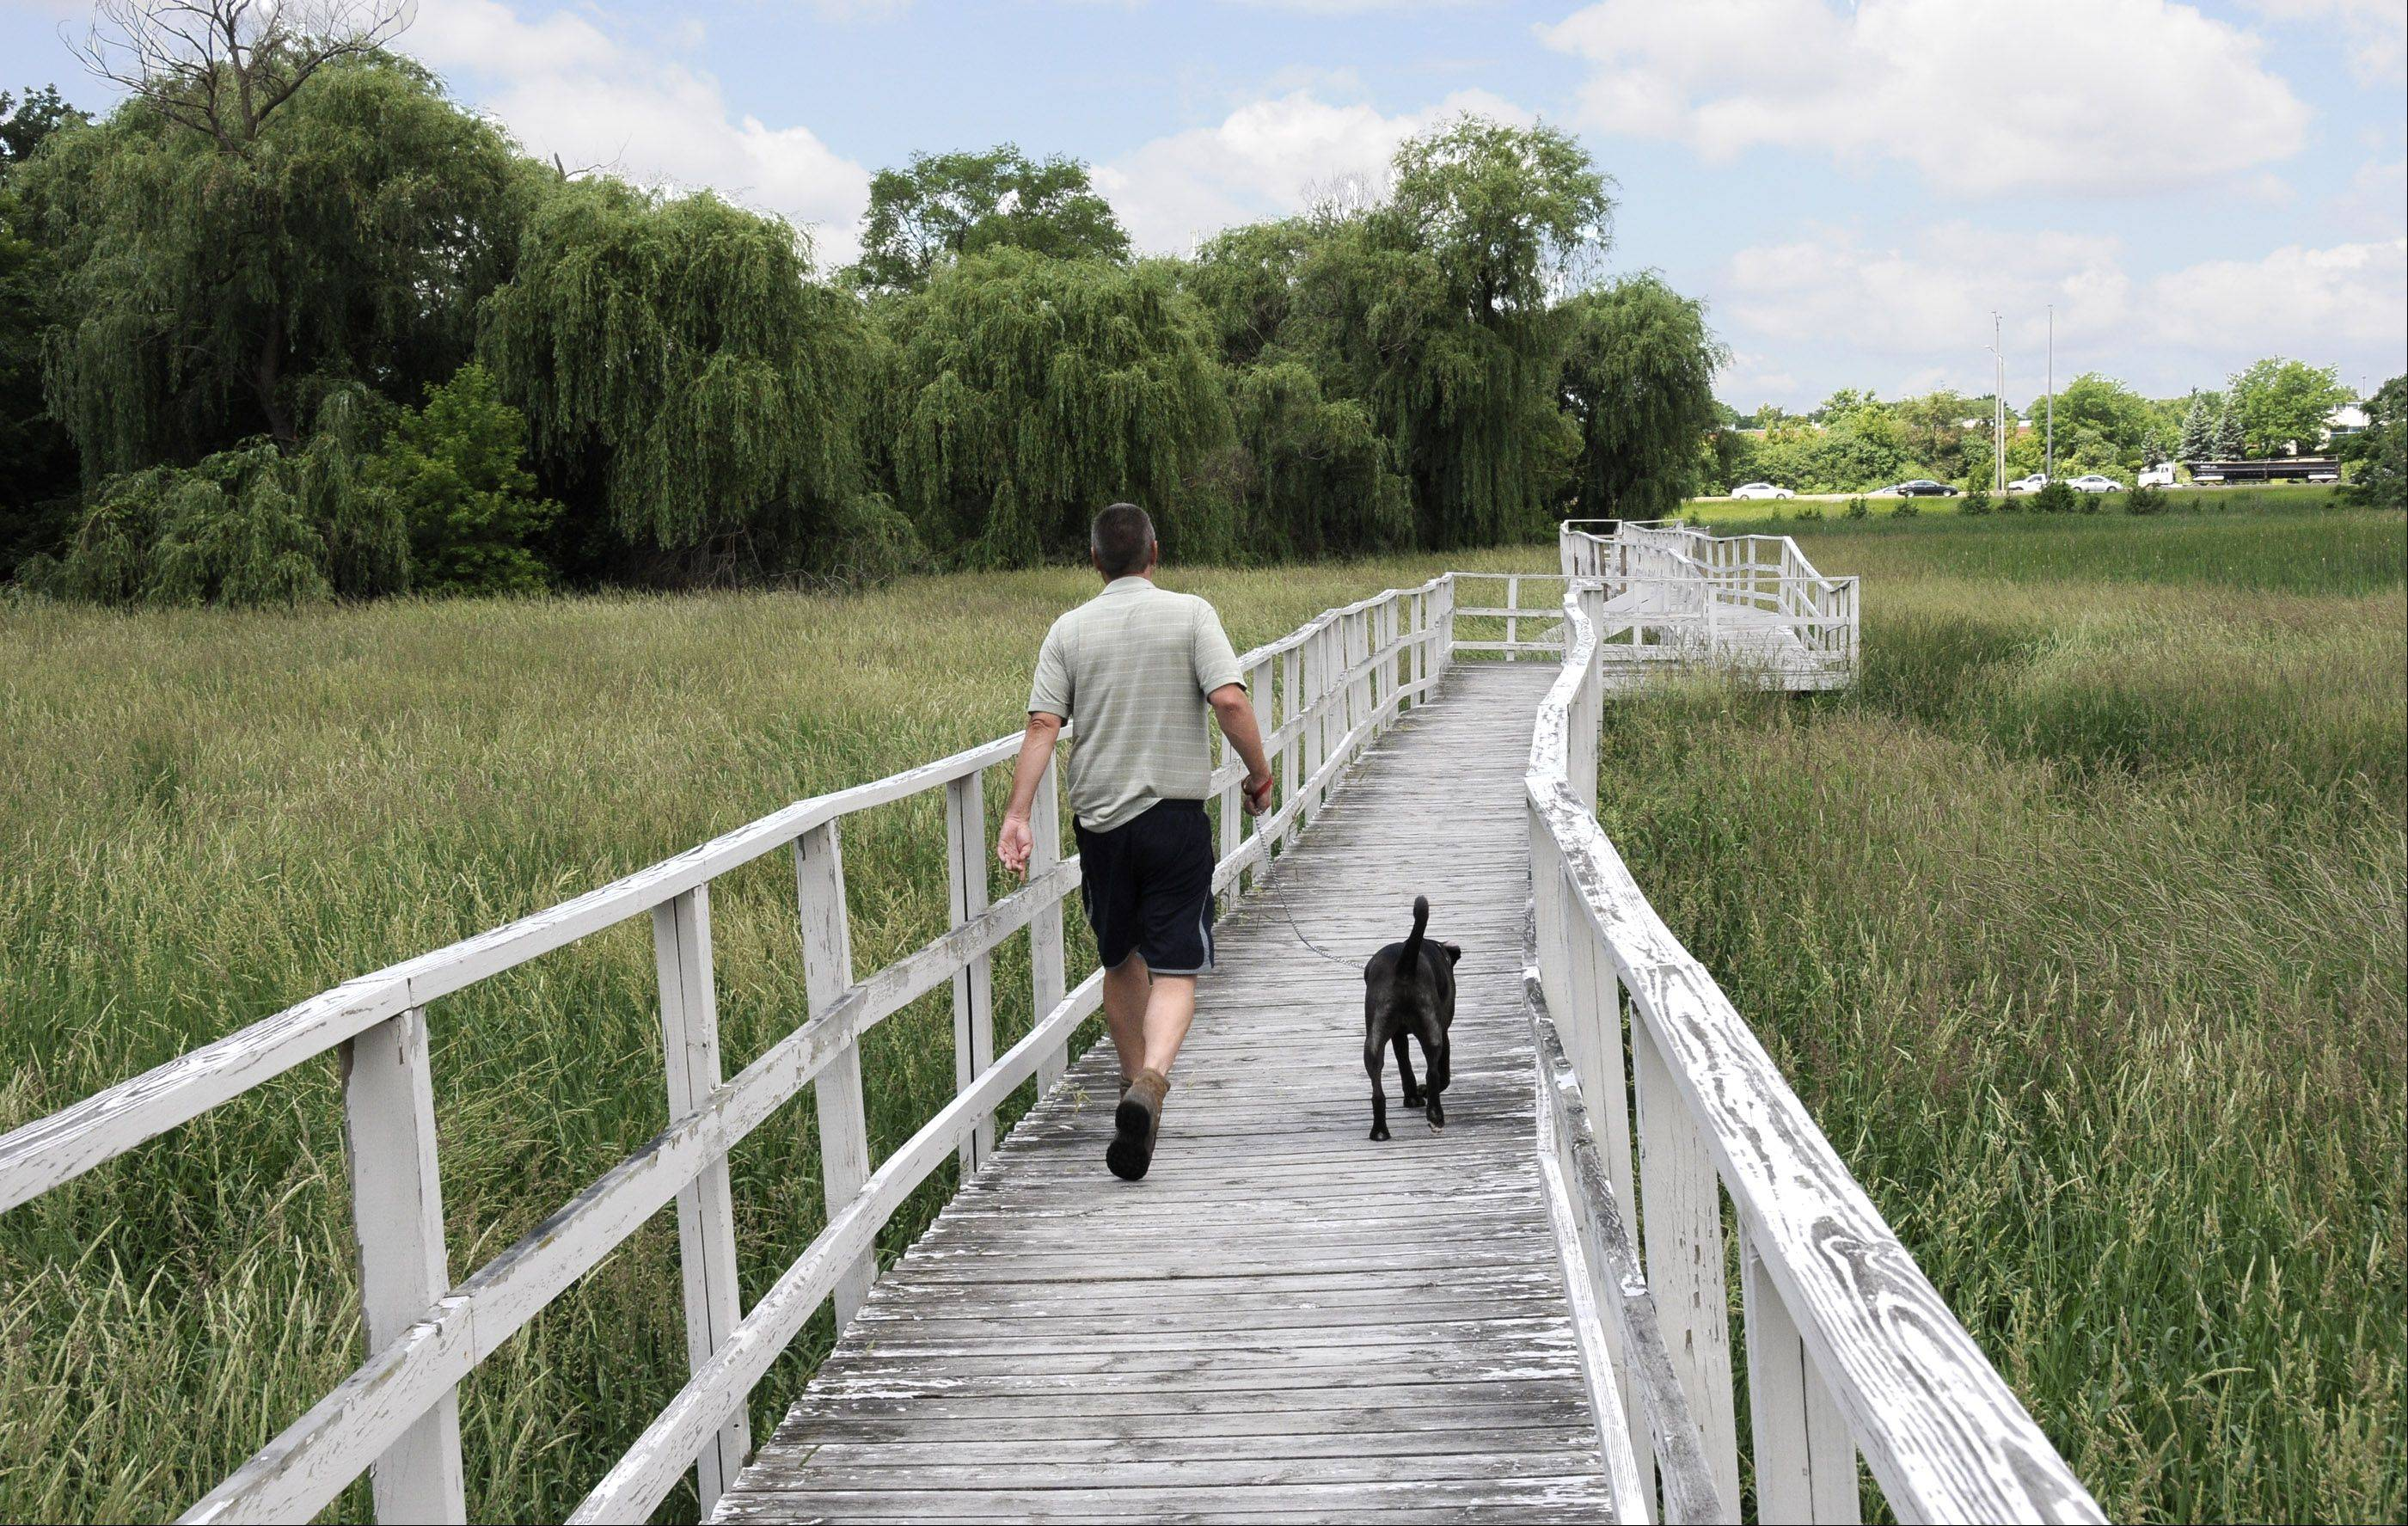 Workers will begin construction on a new boardwalk near Spring Brook Nature Center in Itasca starting next month.